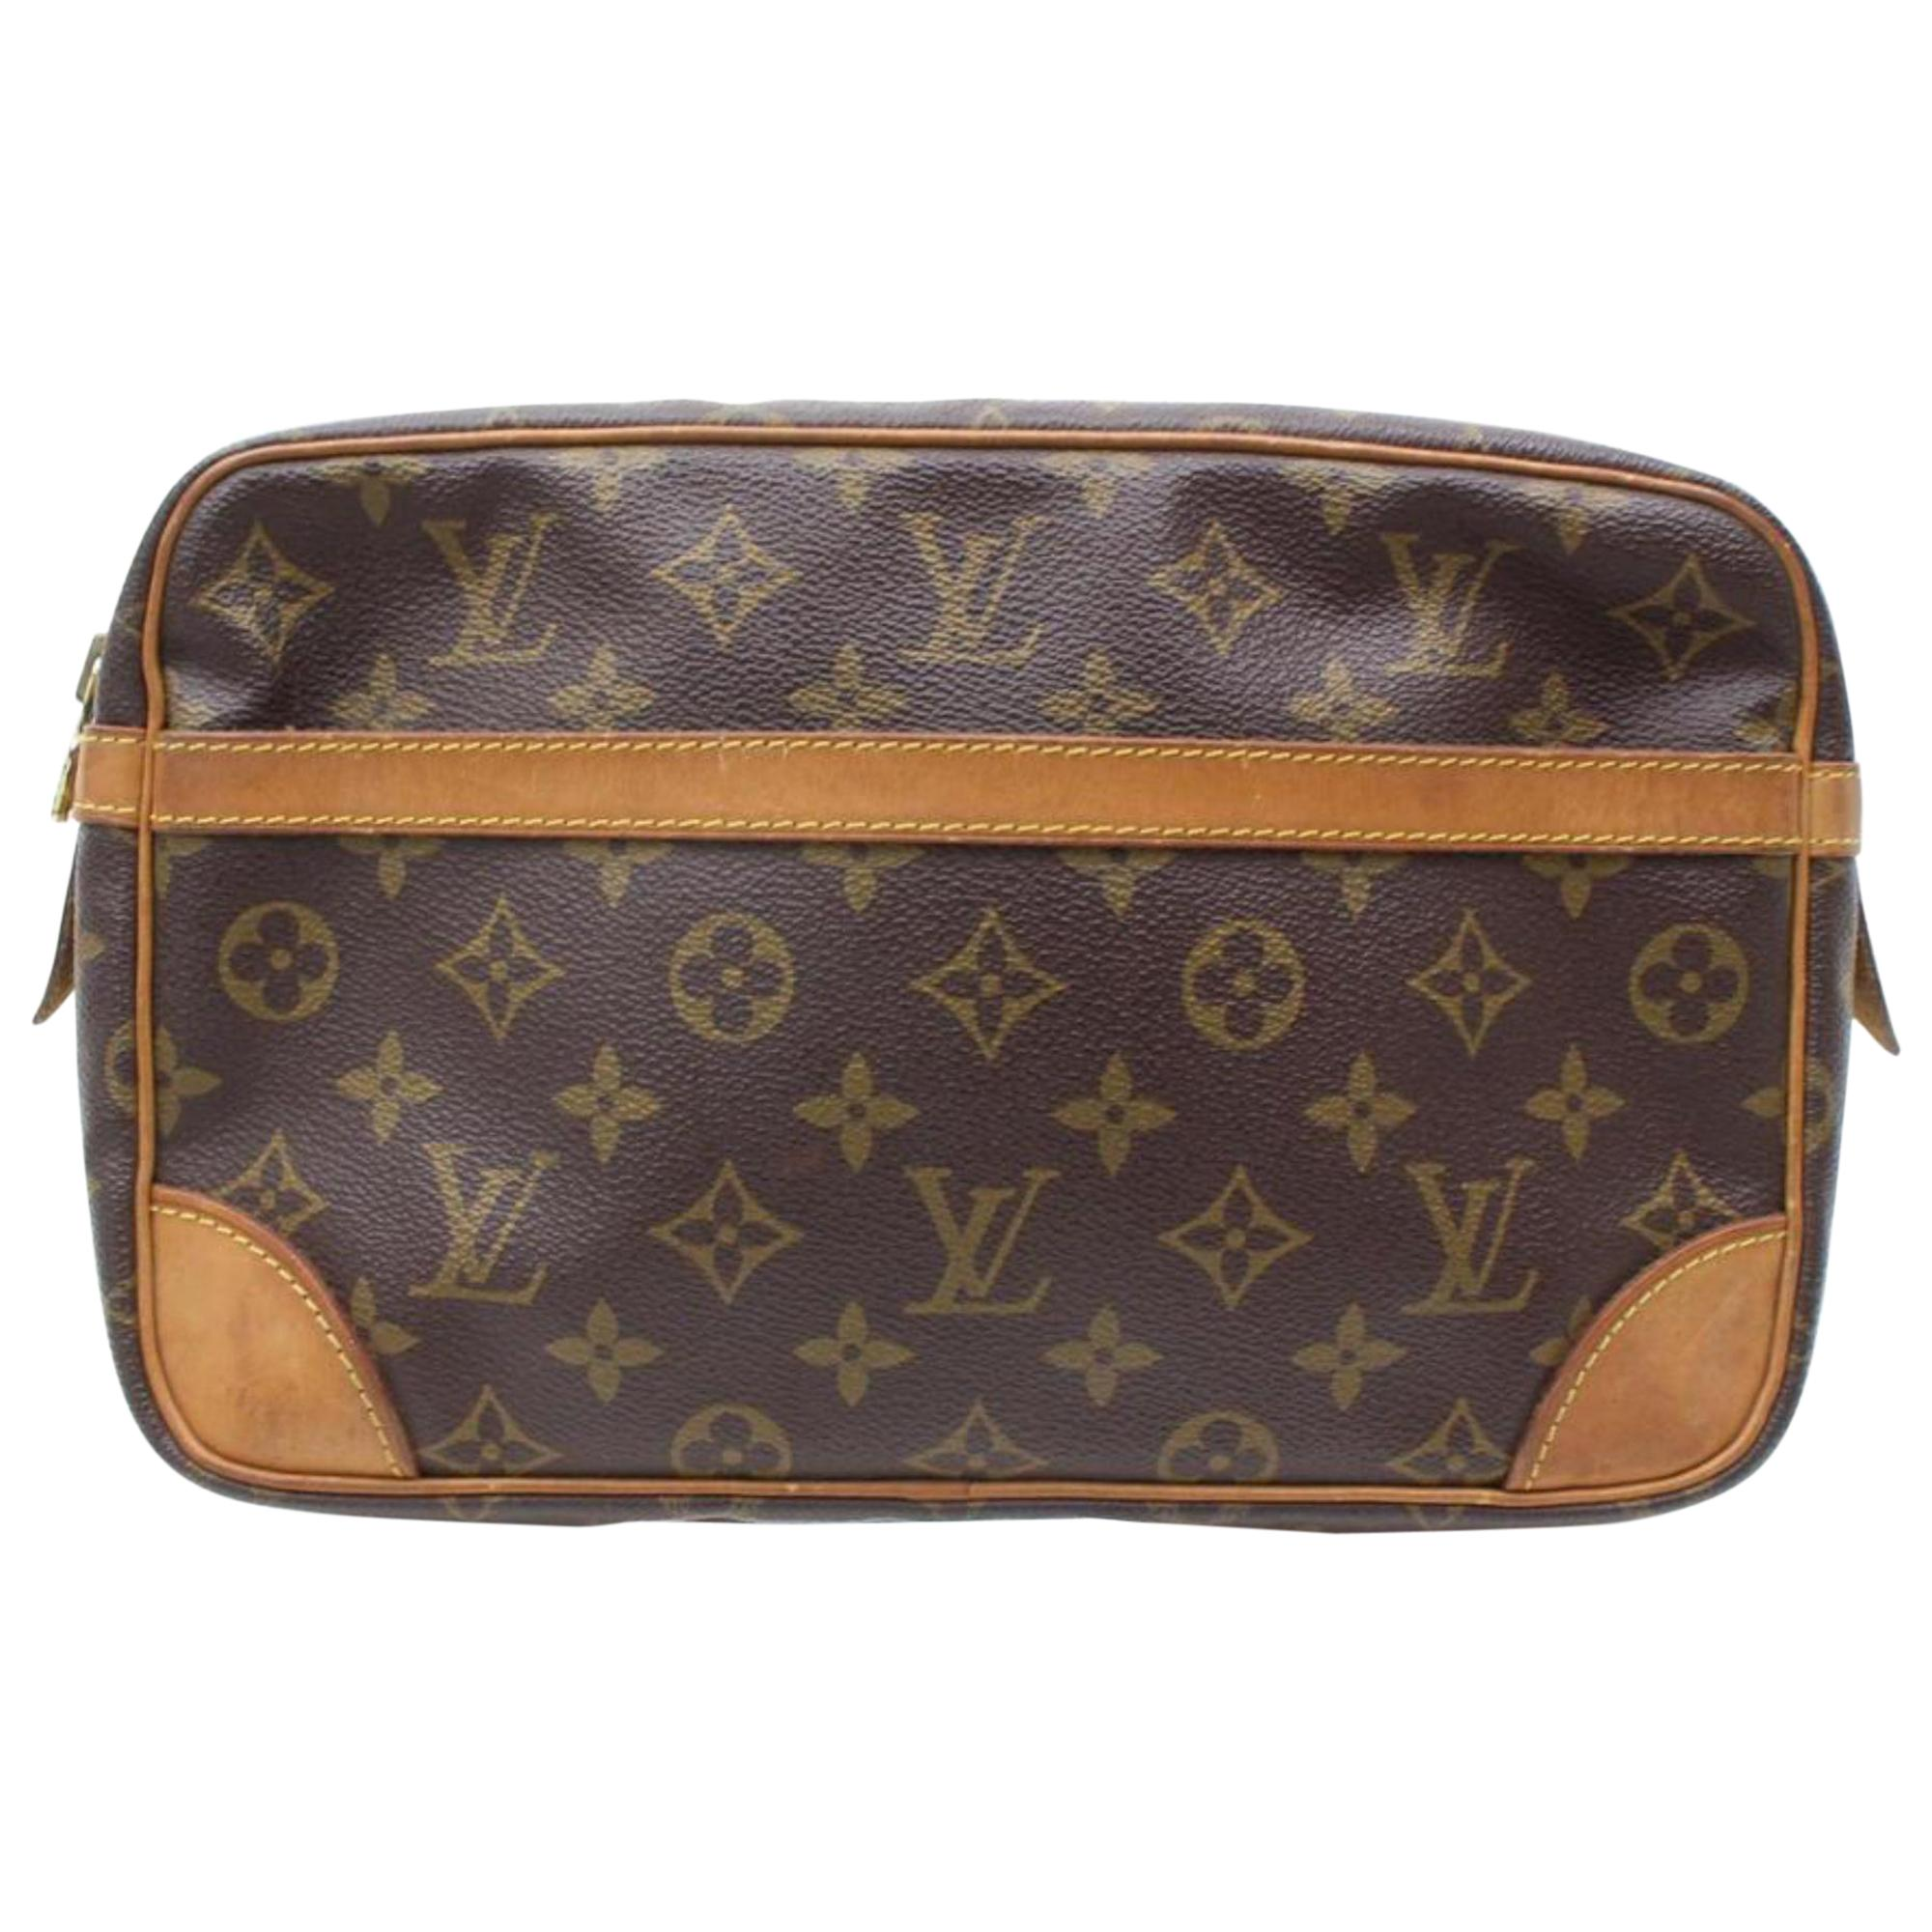 8823734bbab0 The Bagriculture Handbags and Purses - 1stdibs - Page 13